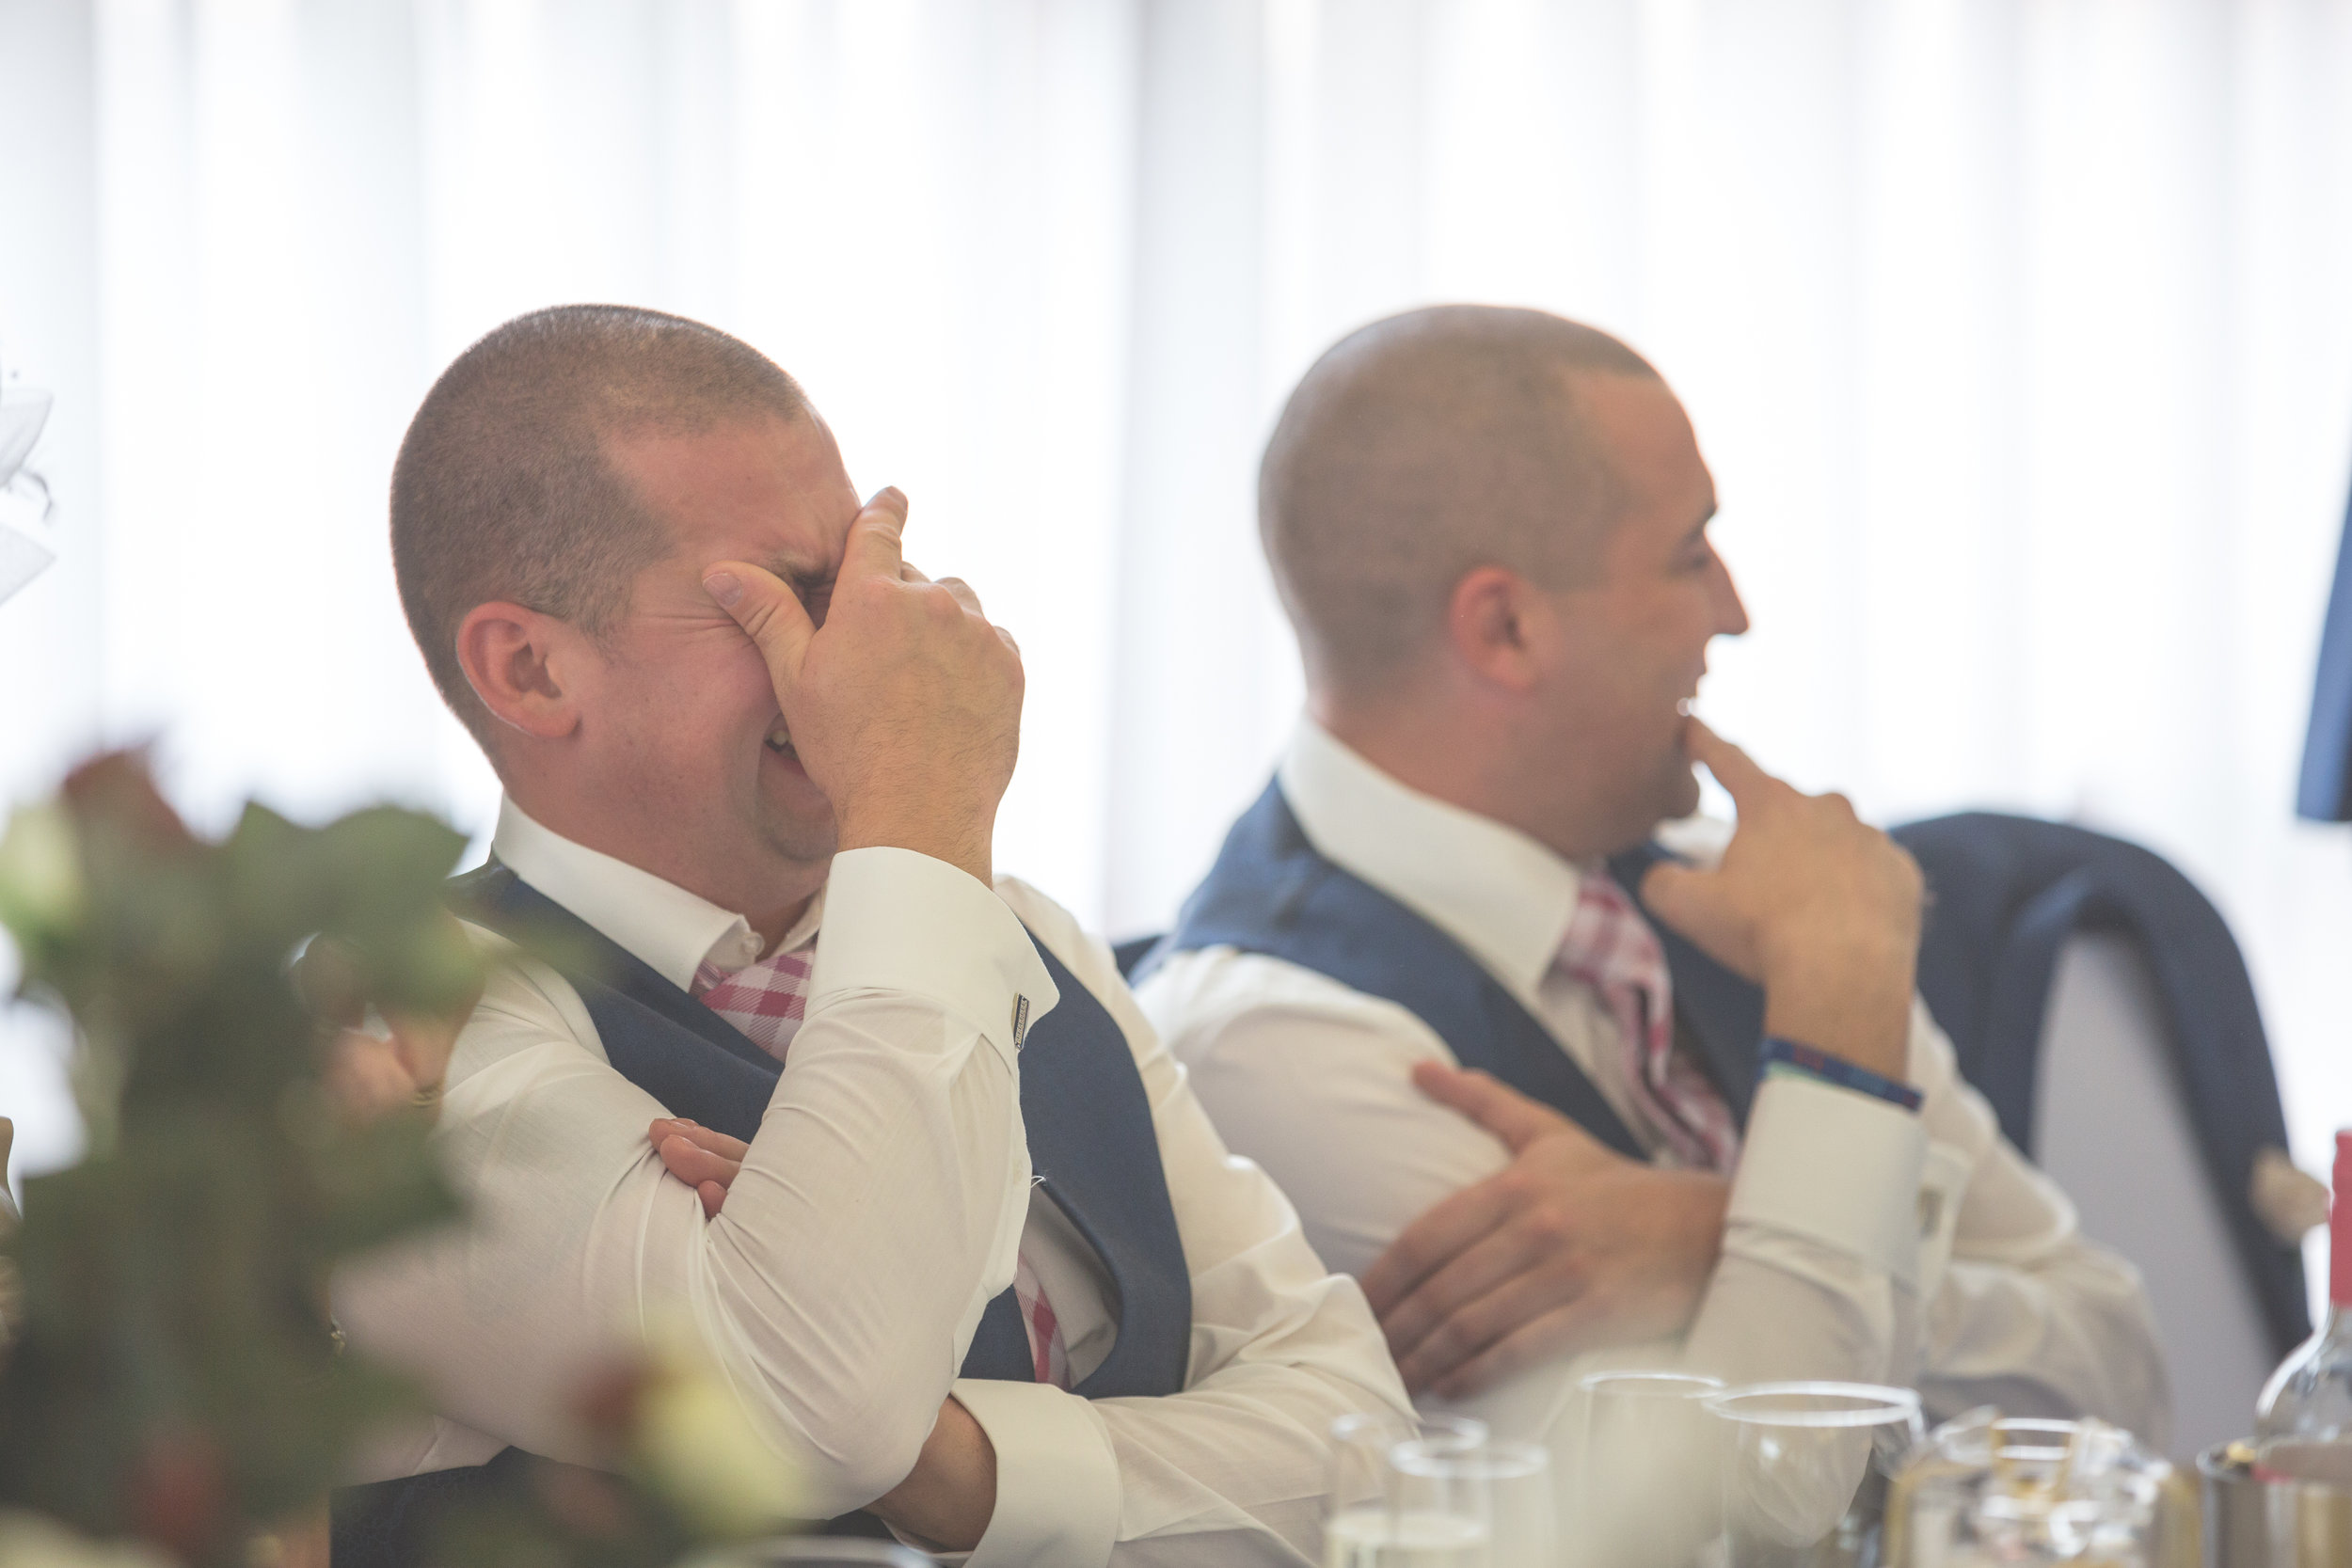 Antoinette & Stephen - Speeches | Brian McEwan Photography | Wedding Photographer Northern Ireland 95.jpg